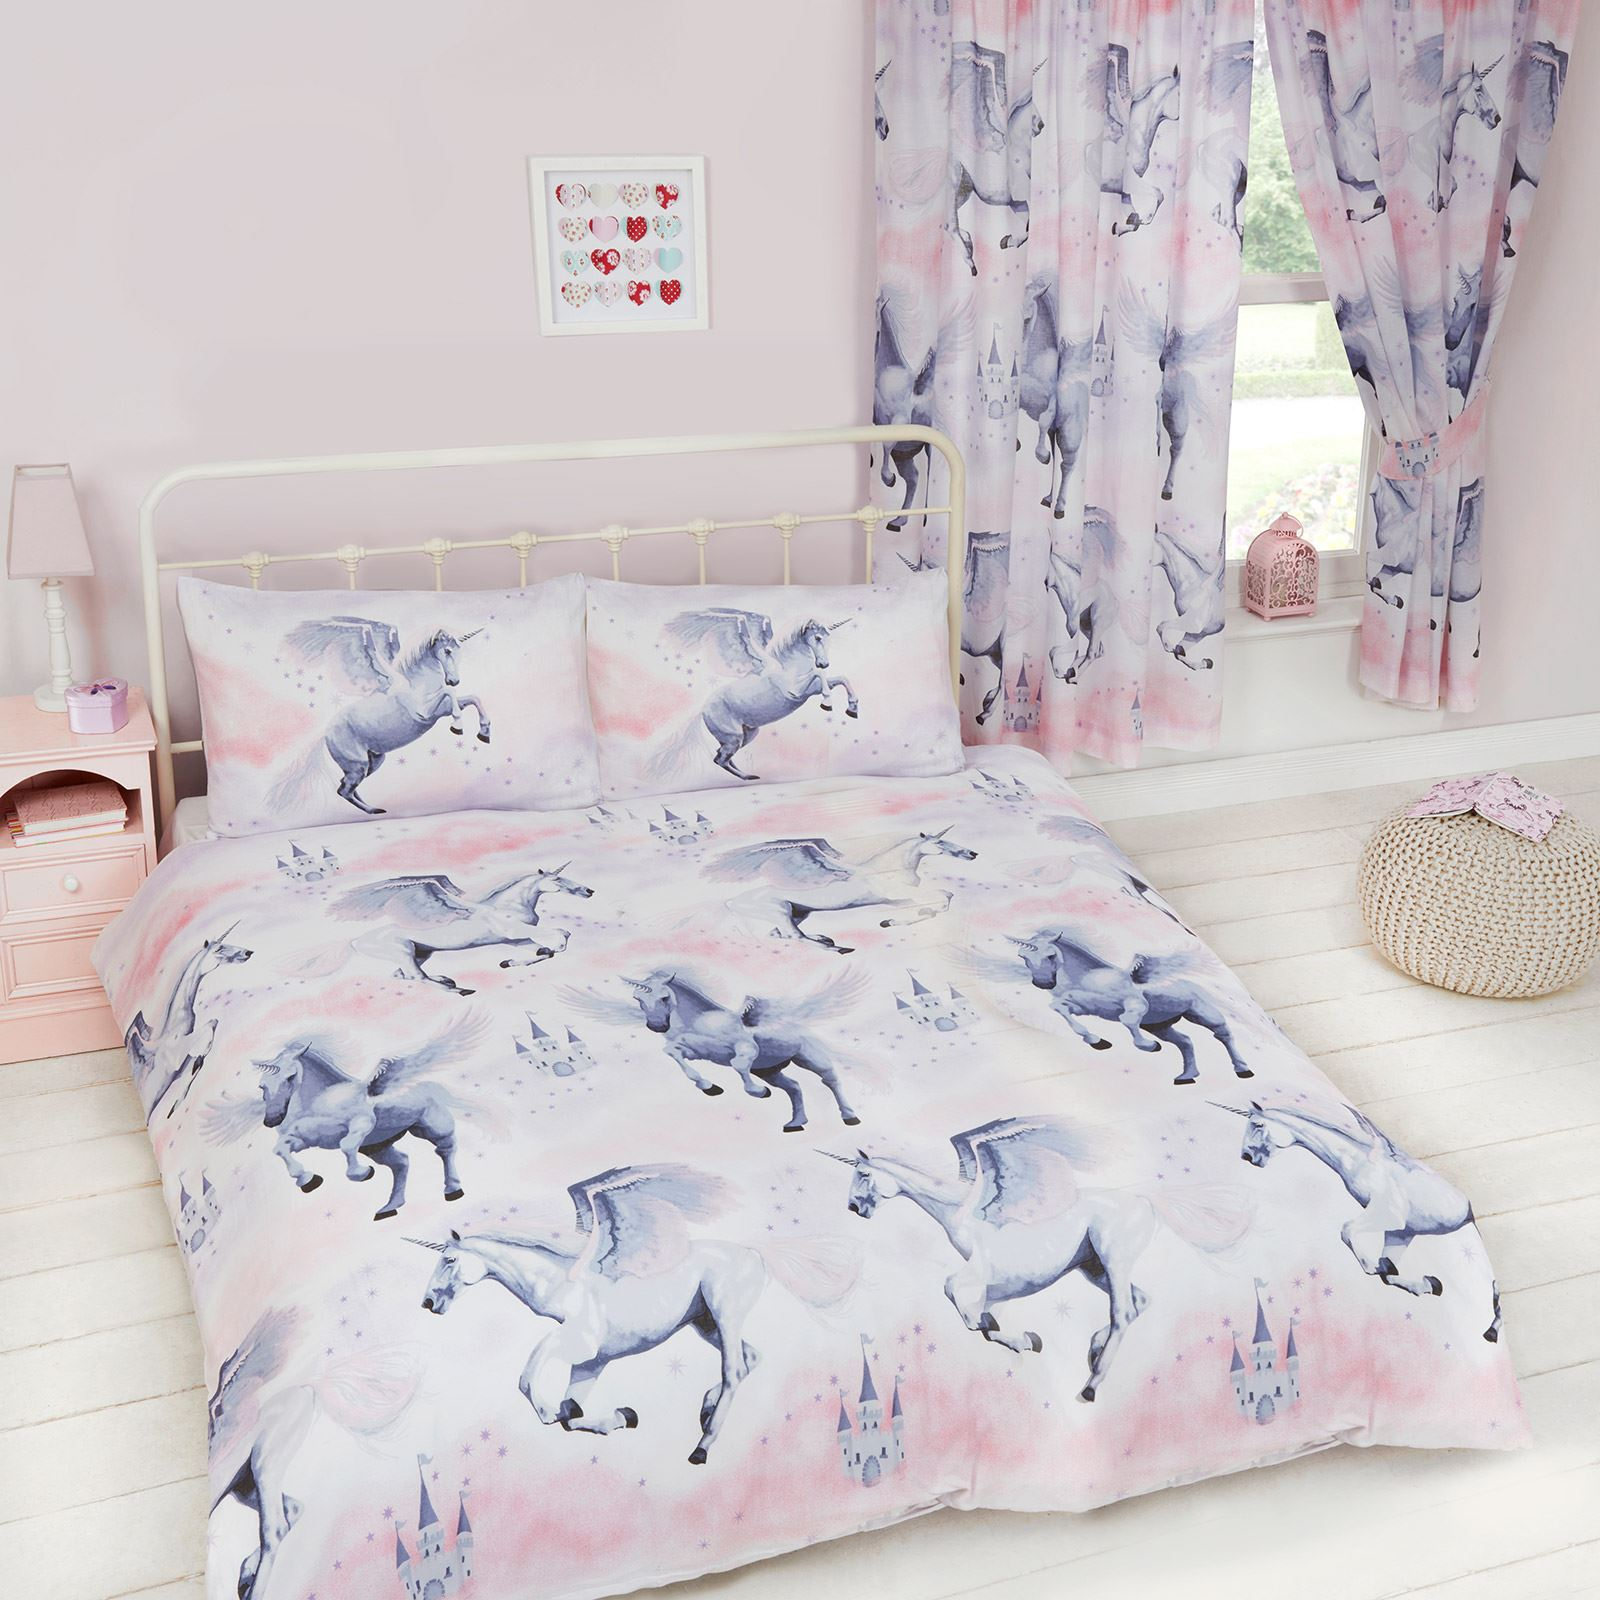 Cot Bed Duvet Sheets